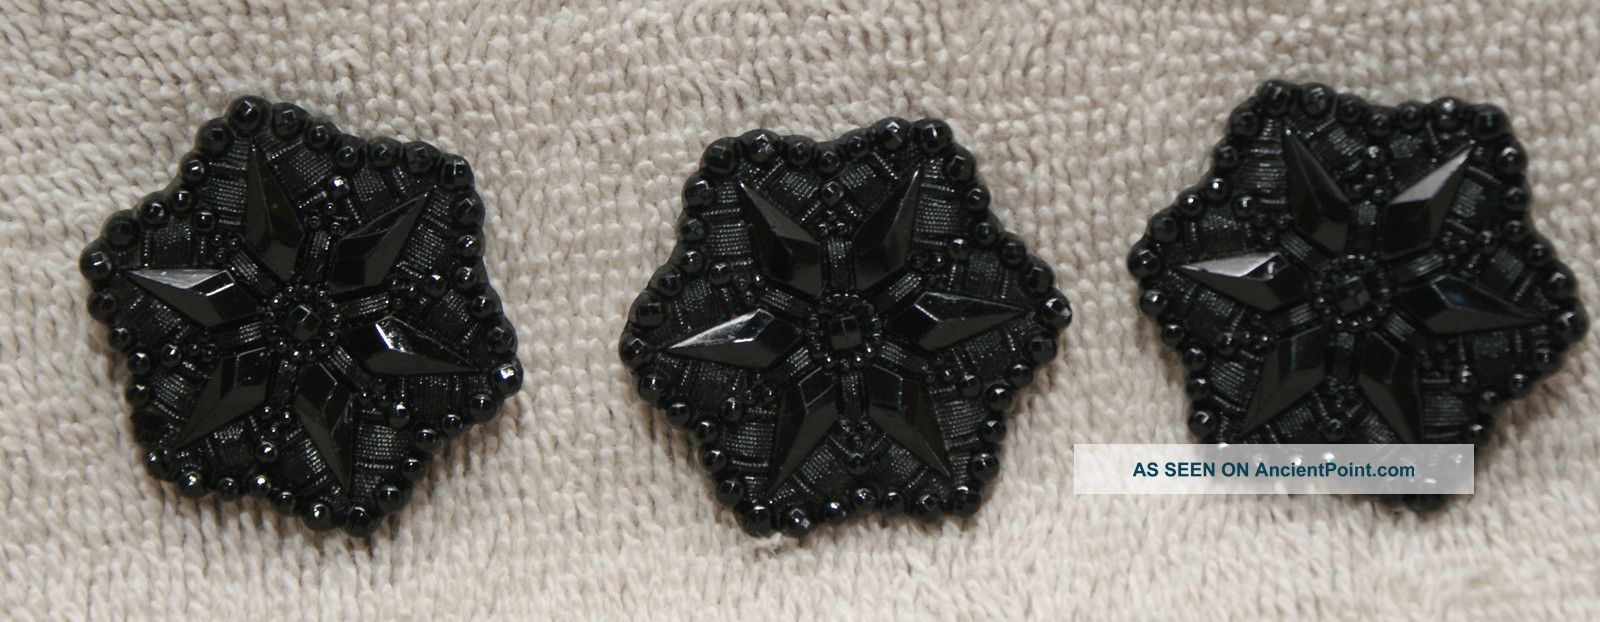 3 Antique Fancy Black Glass Buttons Floral Embroidered W/scalloped Border Buttons photo